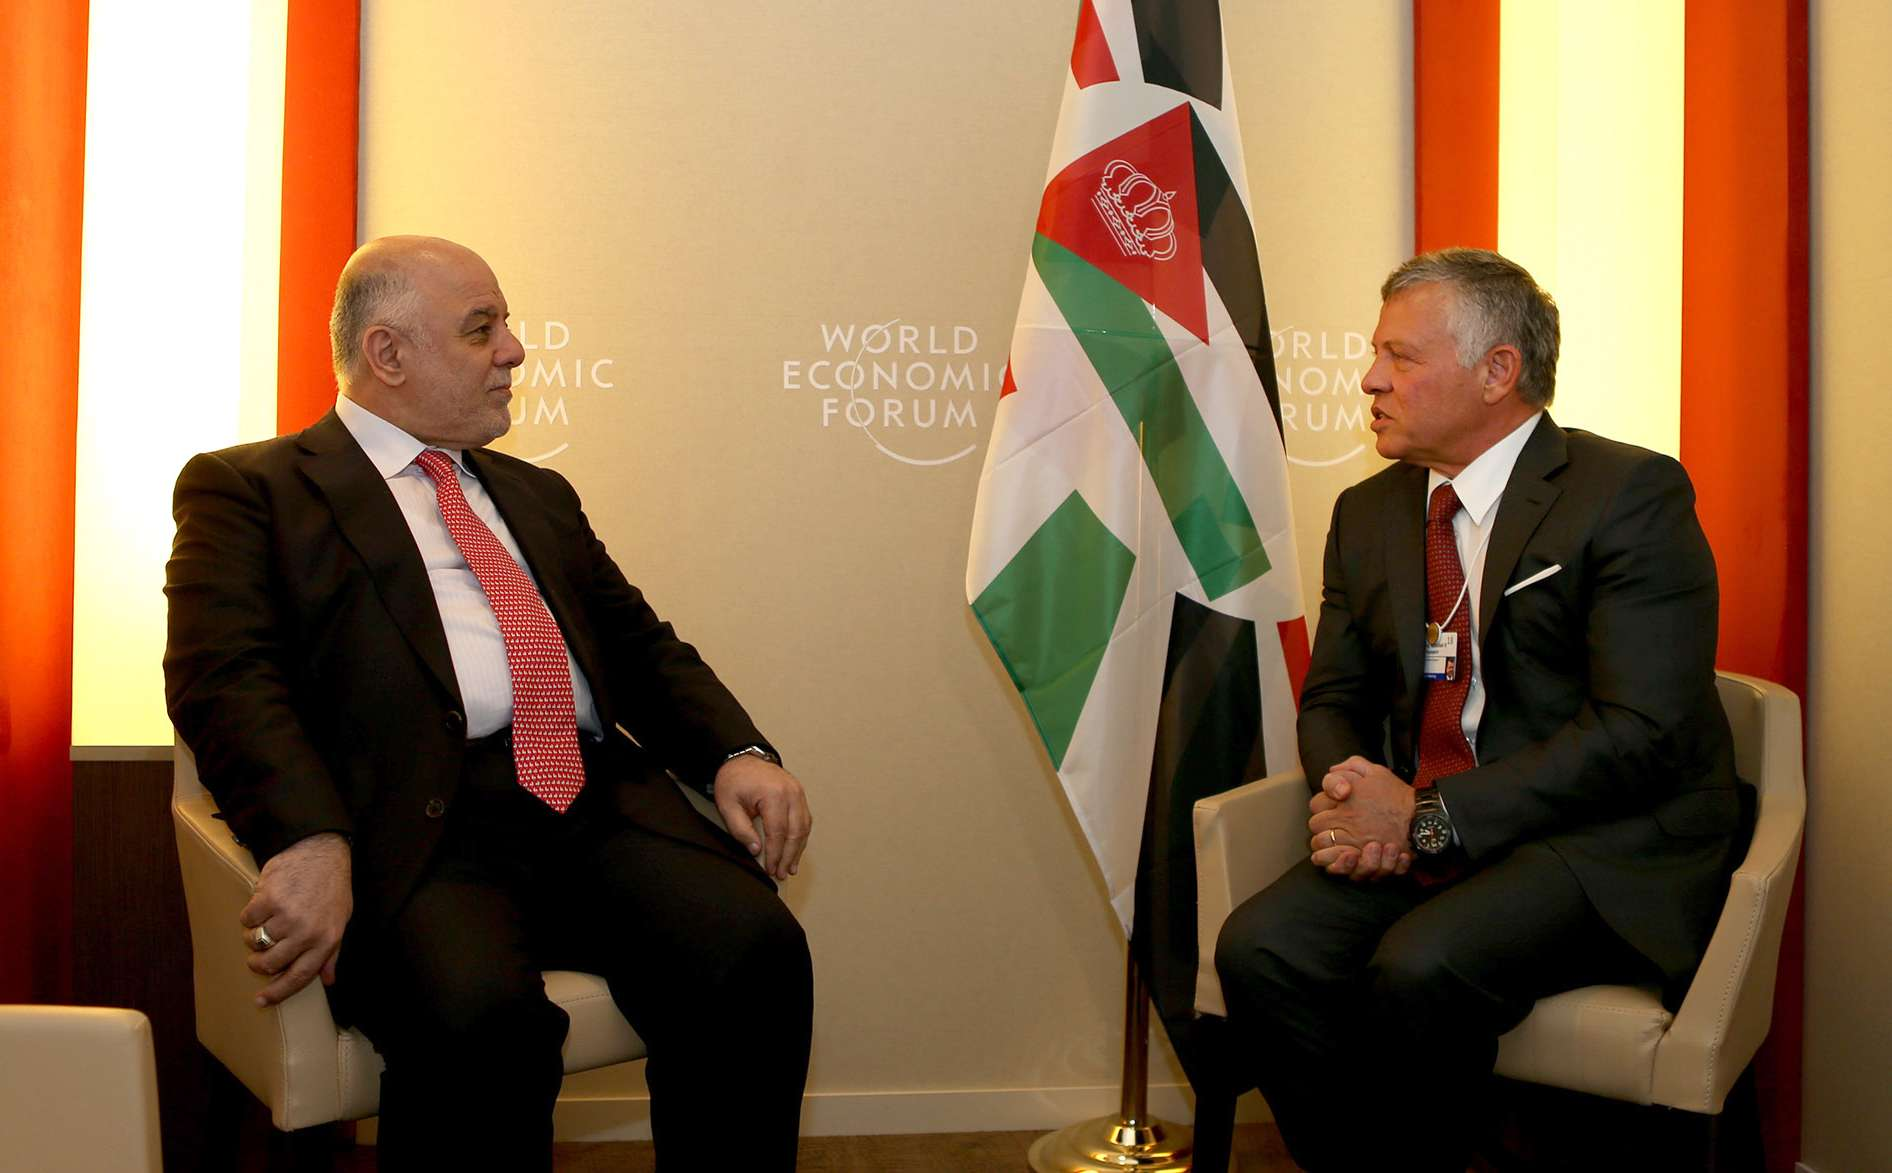 Jordanian King Abdullah II meeting with Iraqi Prime Minister Haider al-Abadi during the annual World Economic Forum (WEF) in Davos, eastern Switzerland, on January 24. (Jordanian Royal Palace)